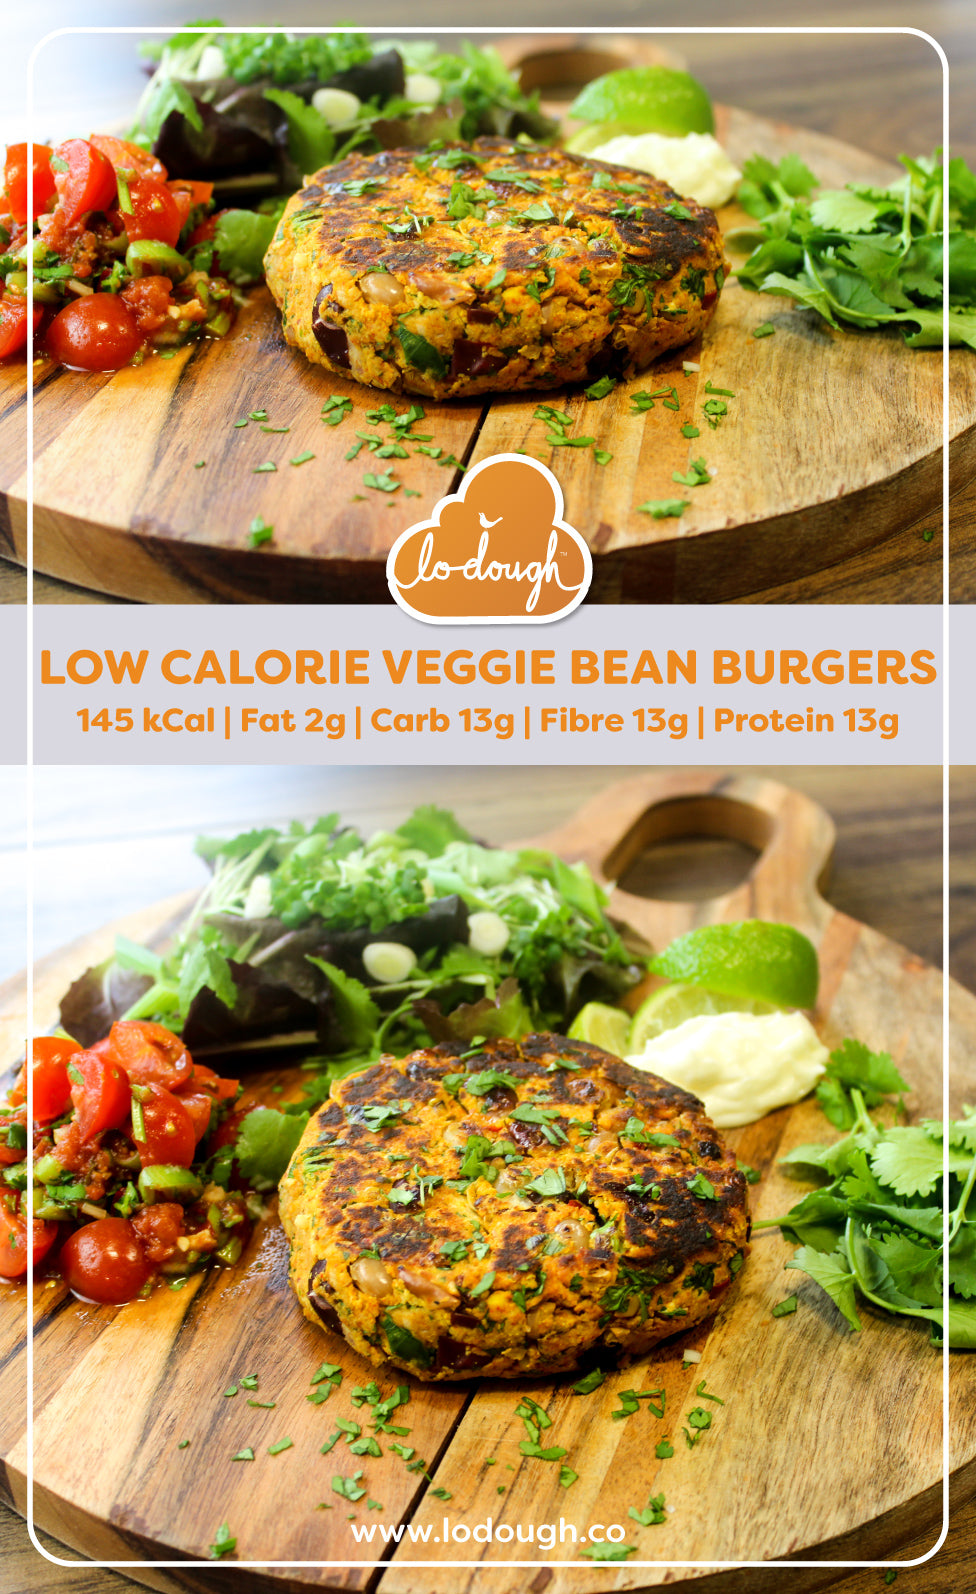 Low Calorie Veggie Bean Burger